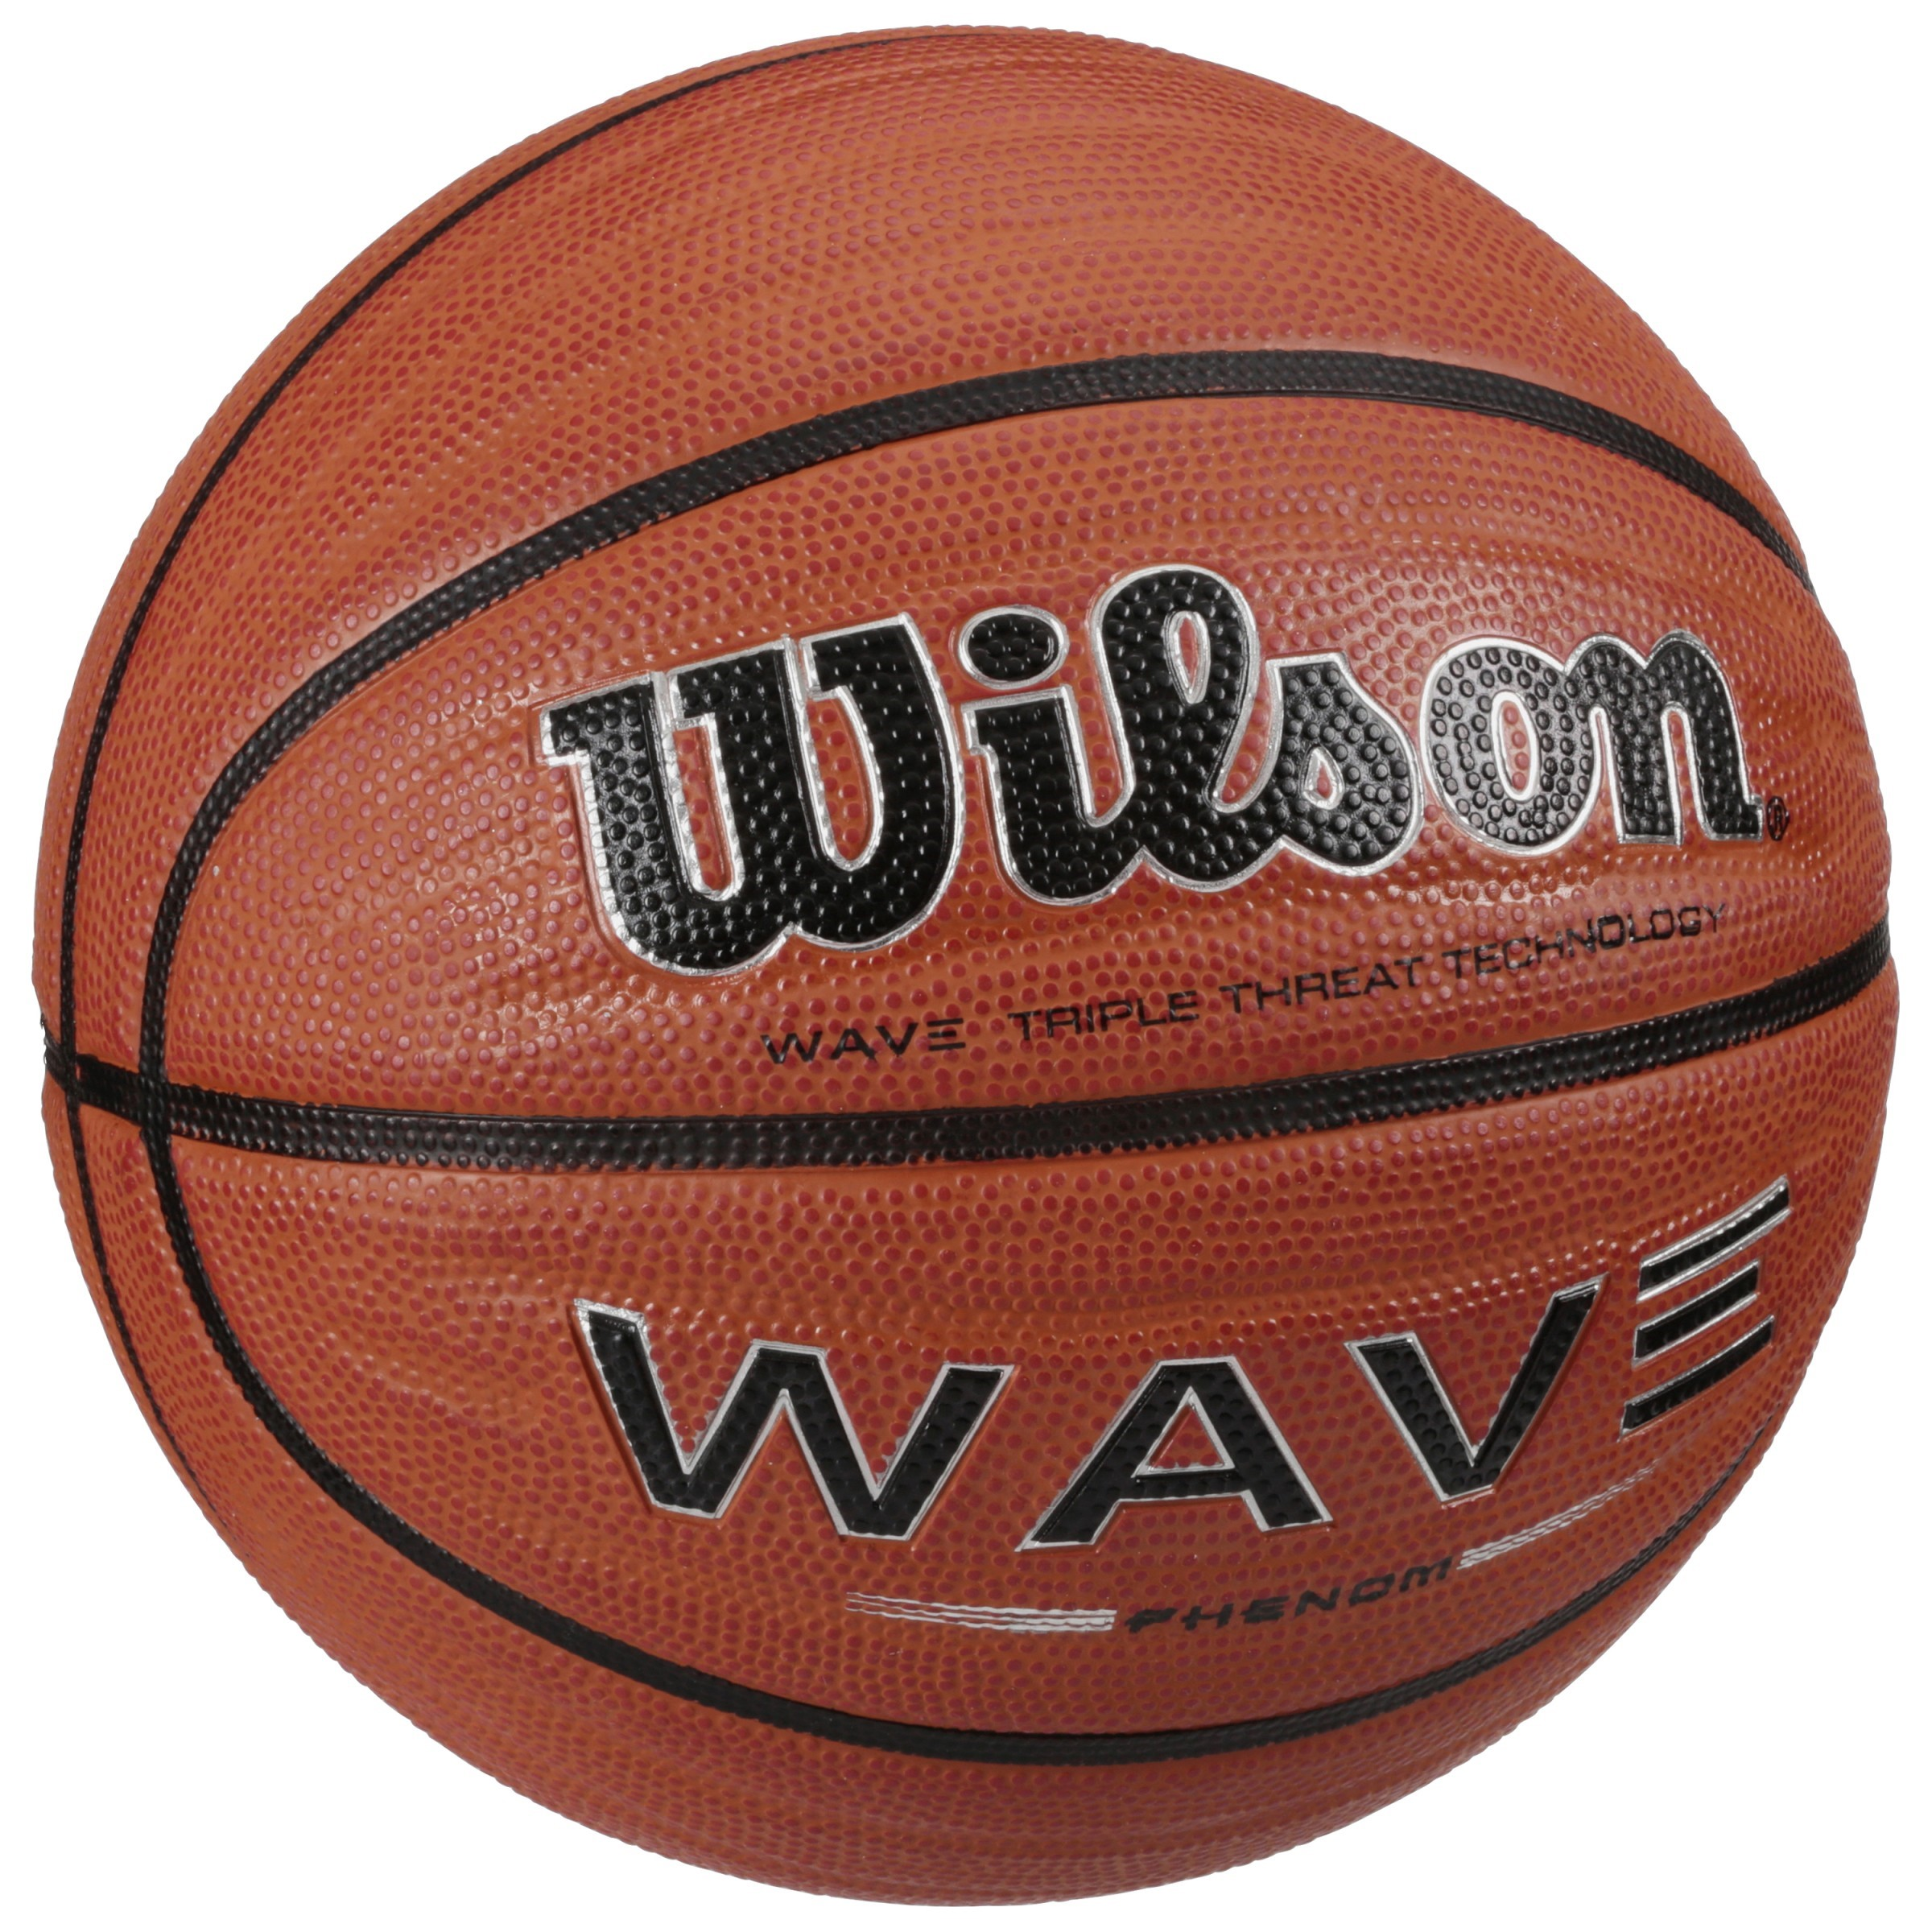 """Wilson® Official 29.5"""" Wave All Surface Phenom Basketball"""